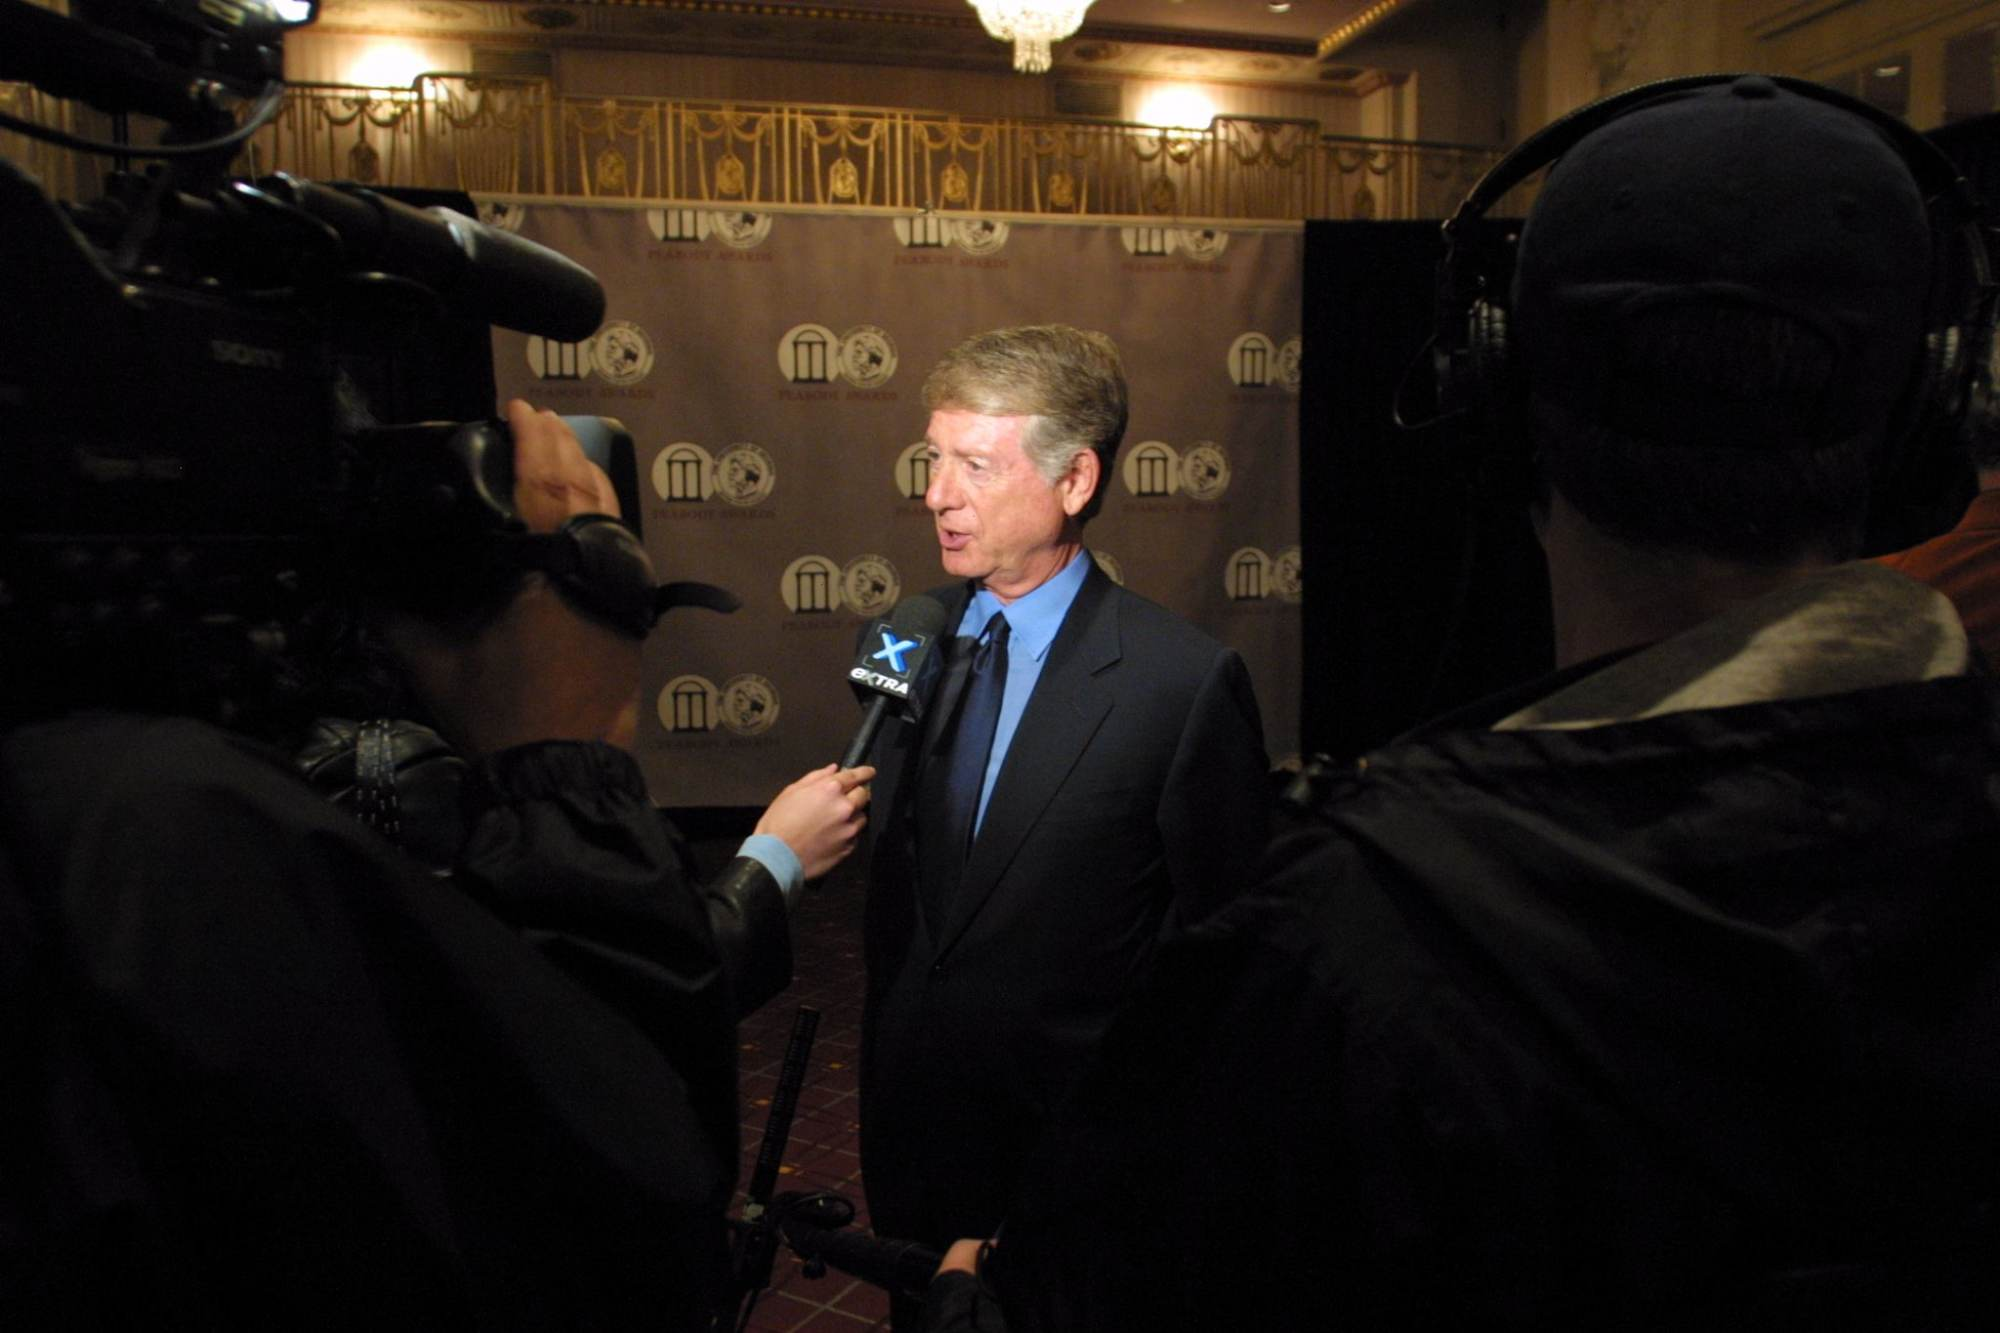 Veteran Journo Koppel Takes on The Press: NYT, WaPo Have Decided Trump Is 'Bad' For US